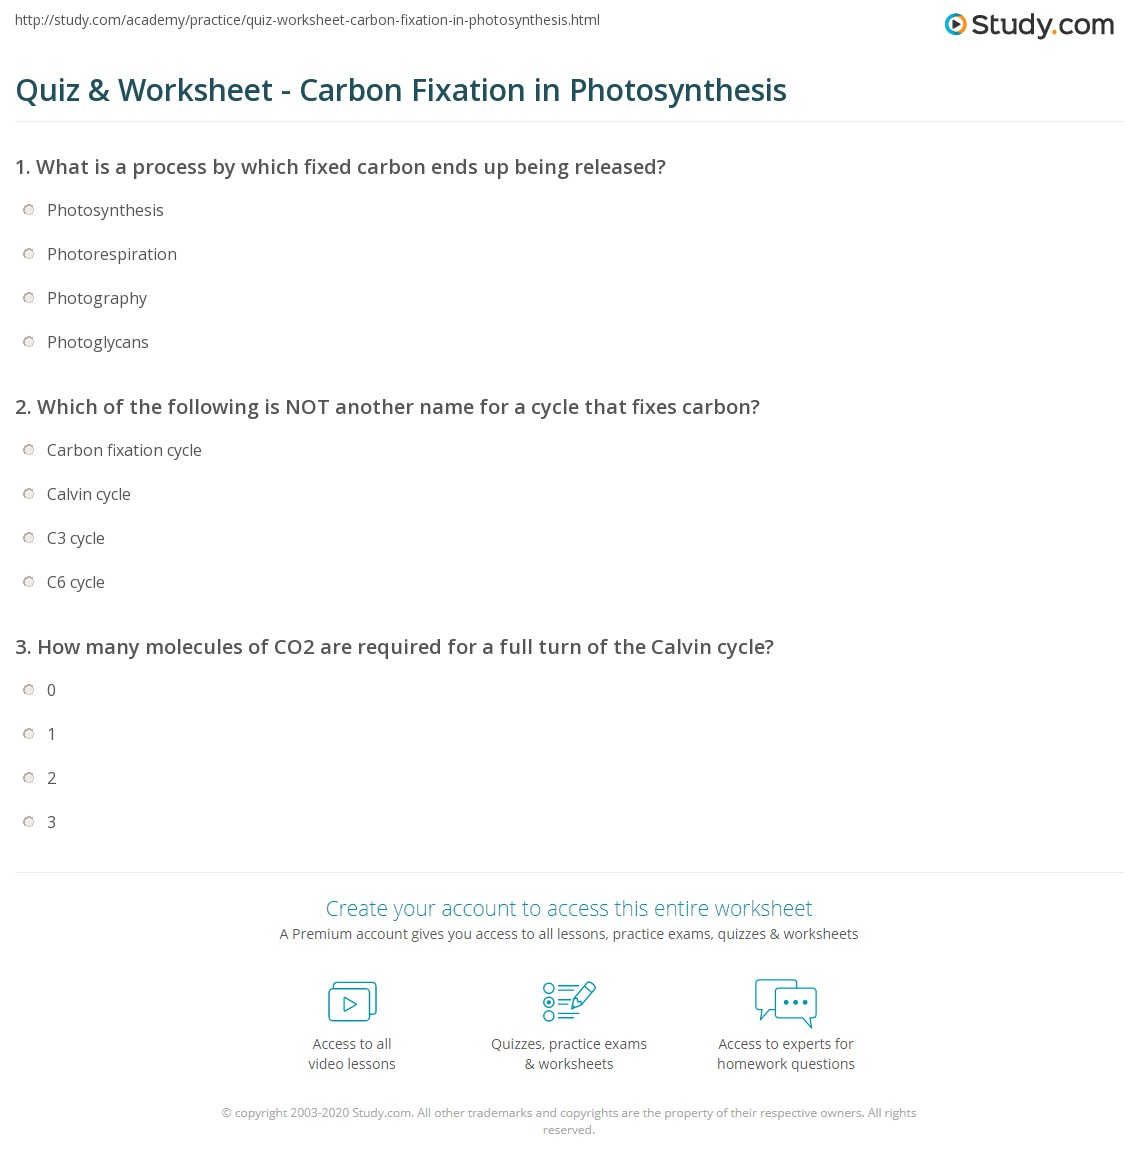 photosynthesis homework help quiz amp worksheet carbon fixation in photosynthesis study com